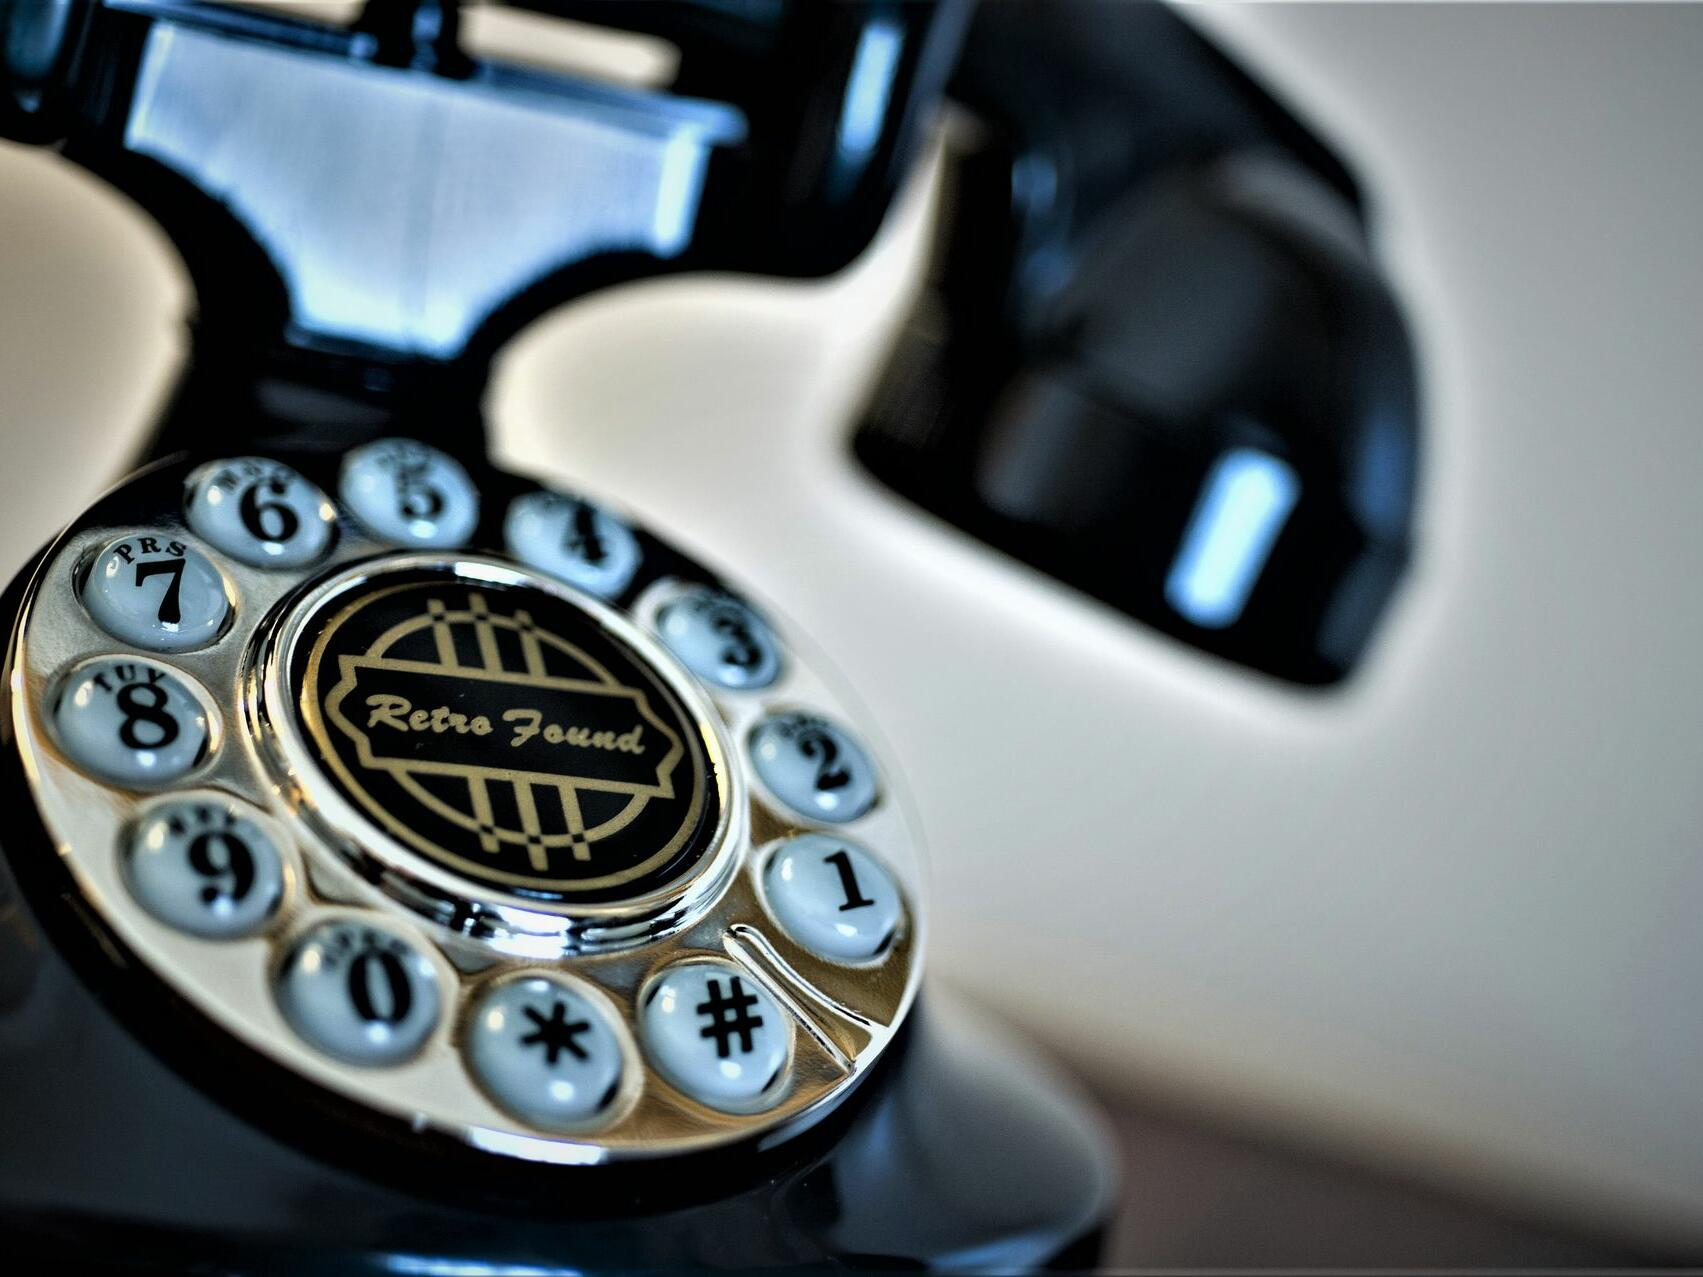 Old telephone on a concierge desk at Hotel at Old Town Wichita